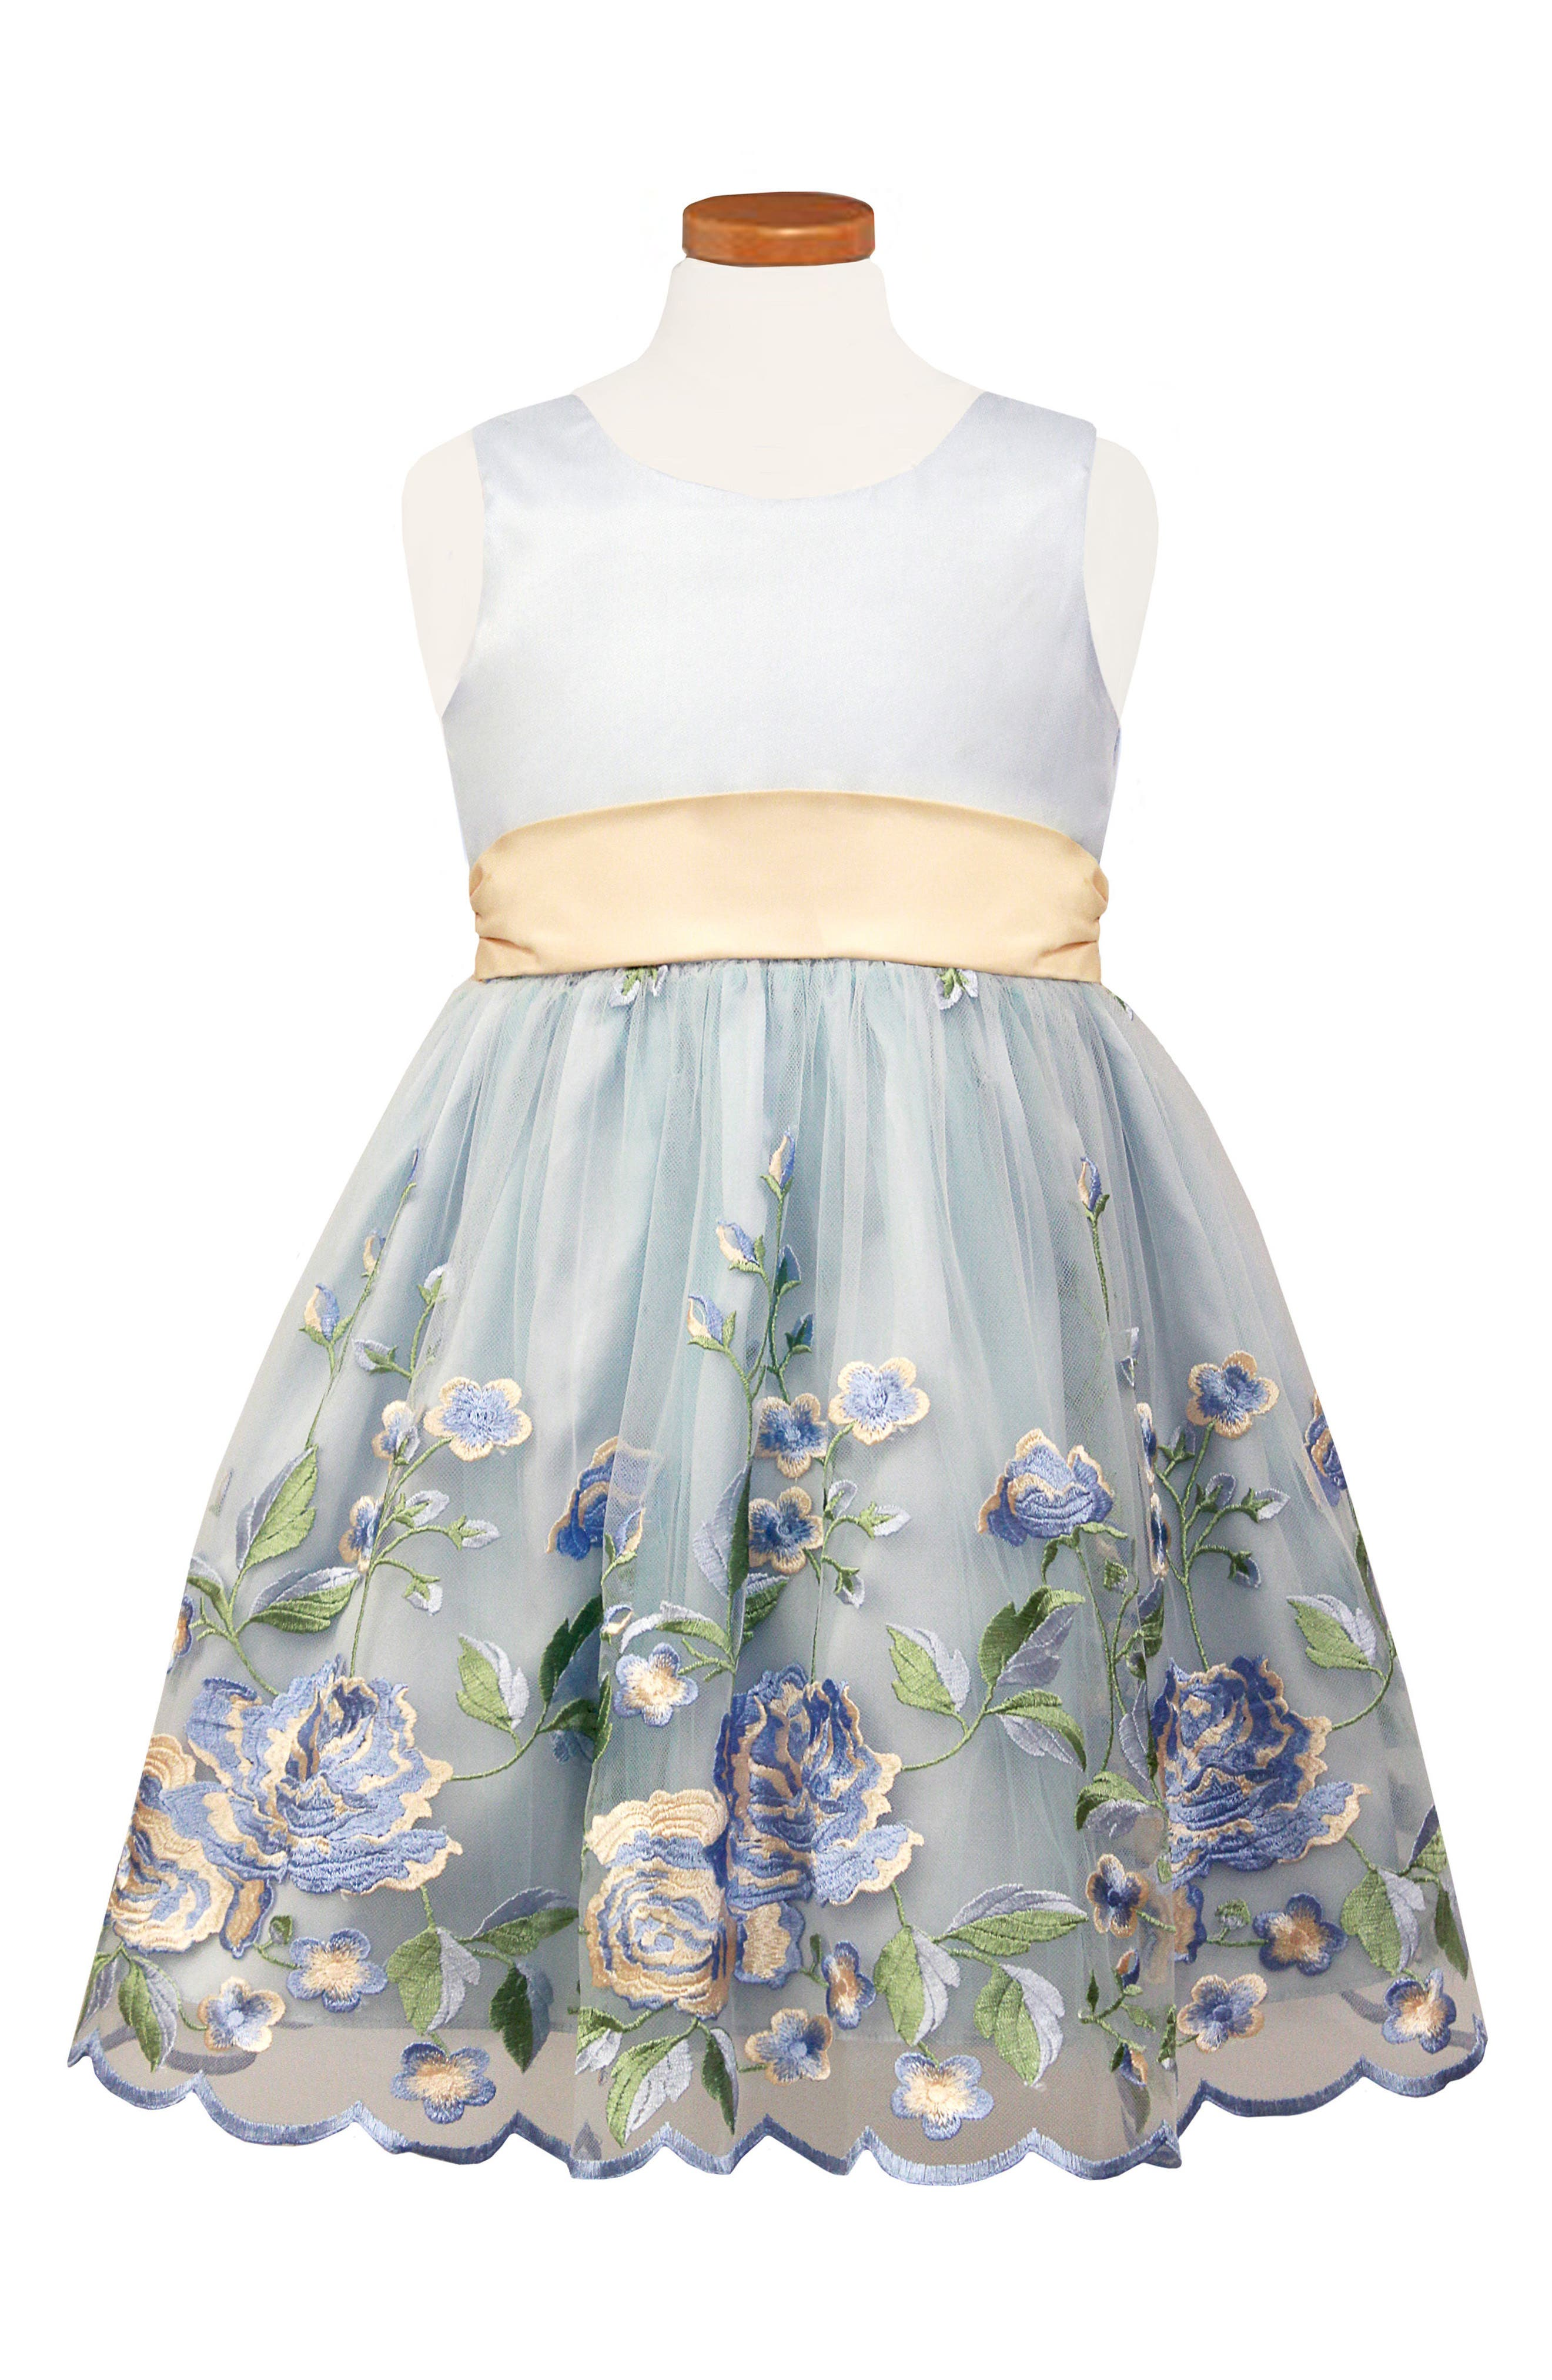 Floral Embroidered Tulle & Organza Party Dress,                             Main thumbnail 1, color,                             420